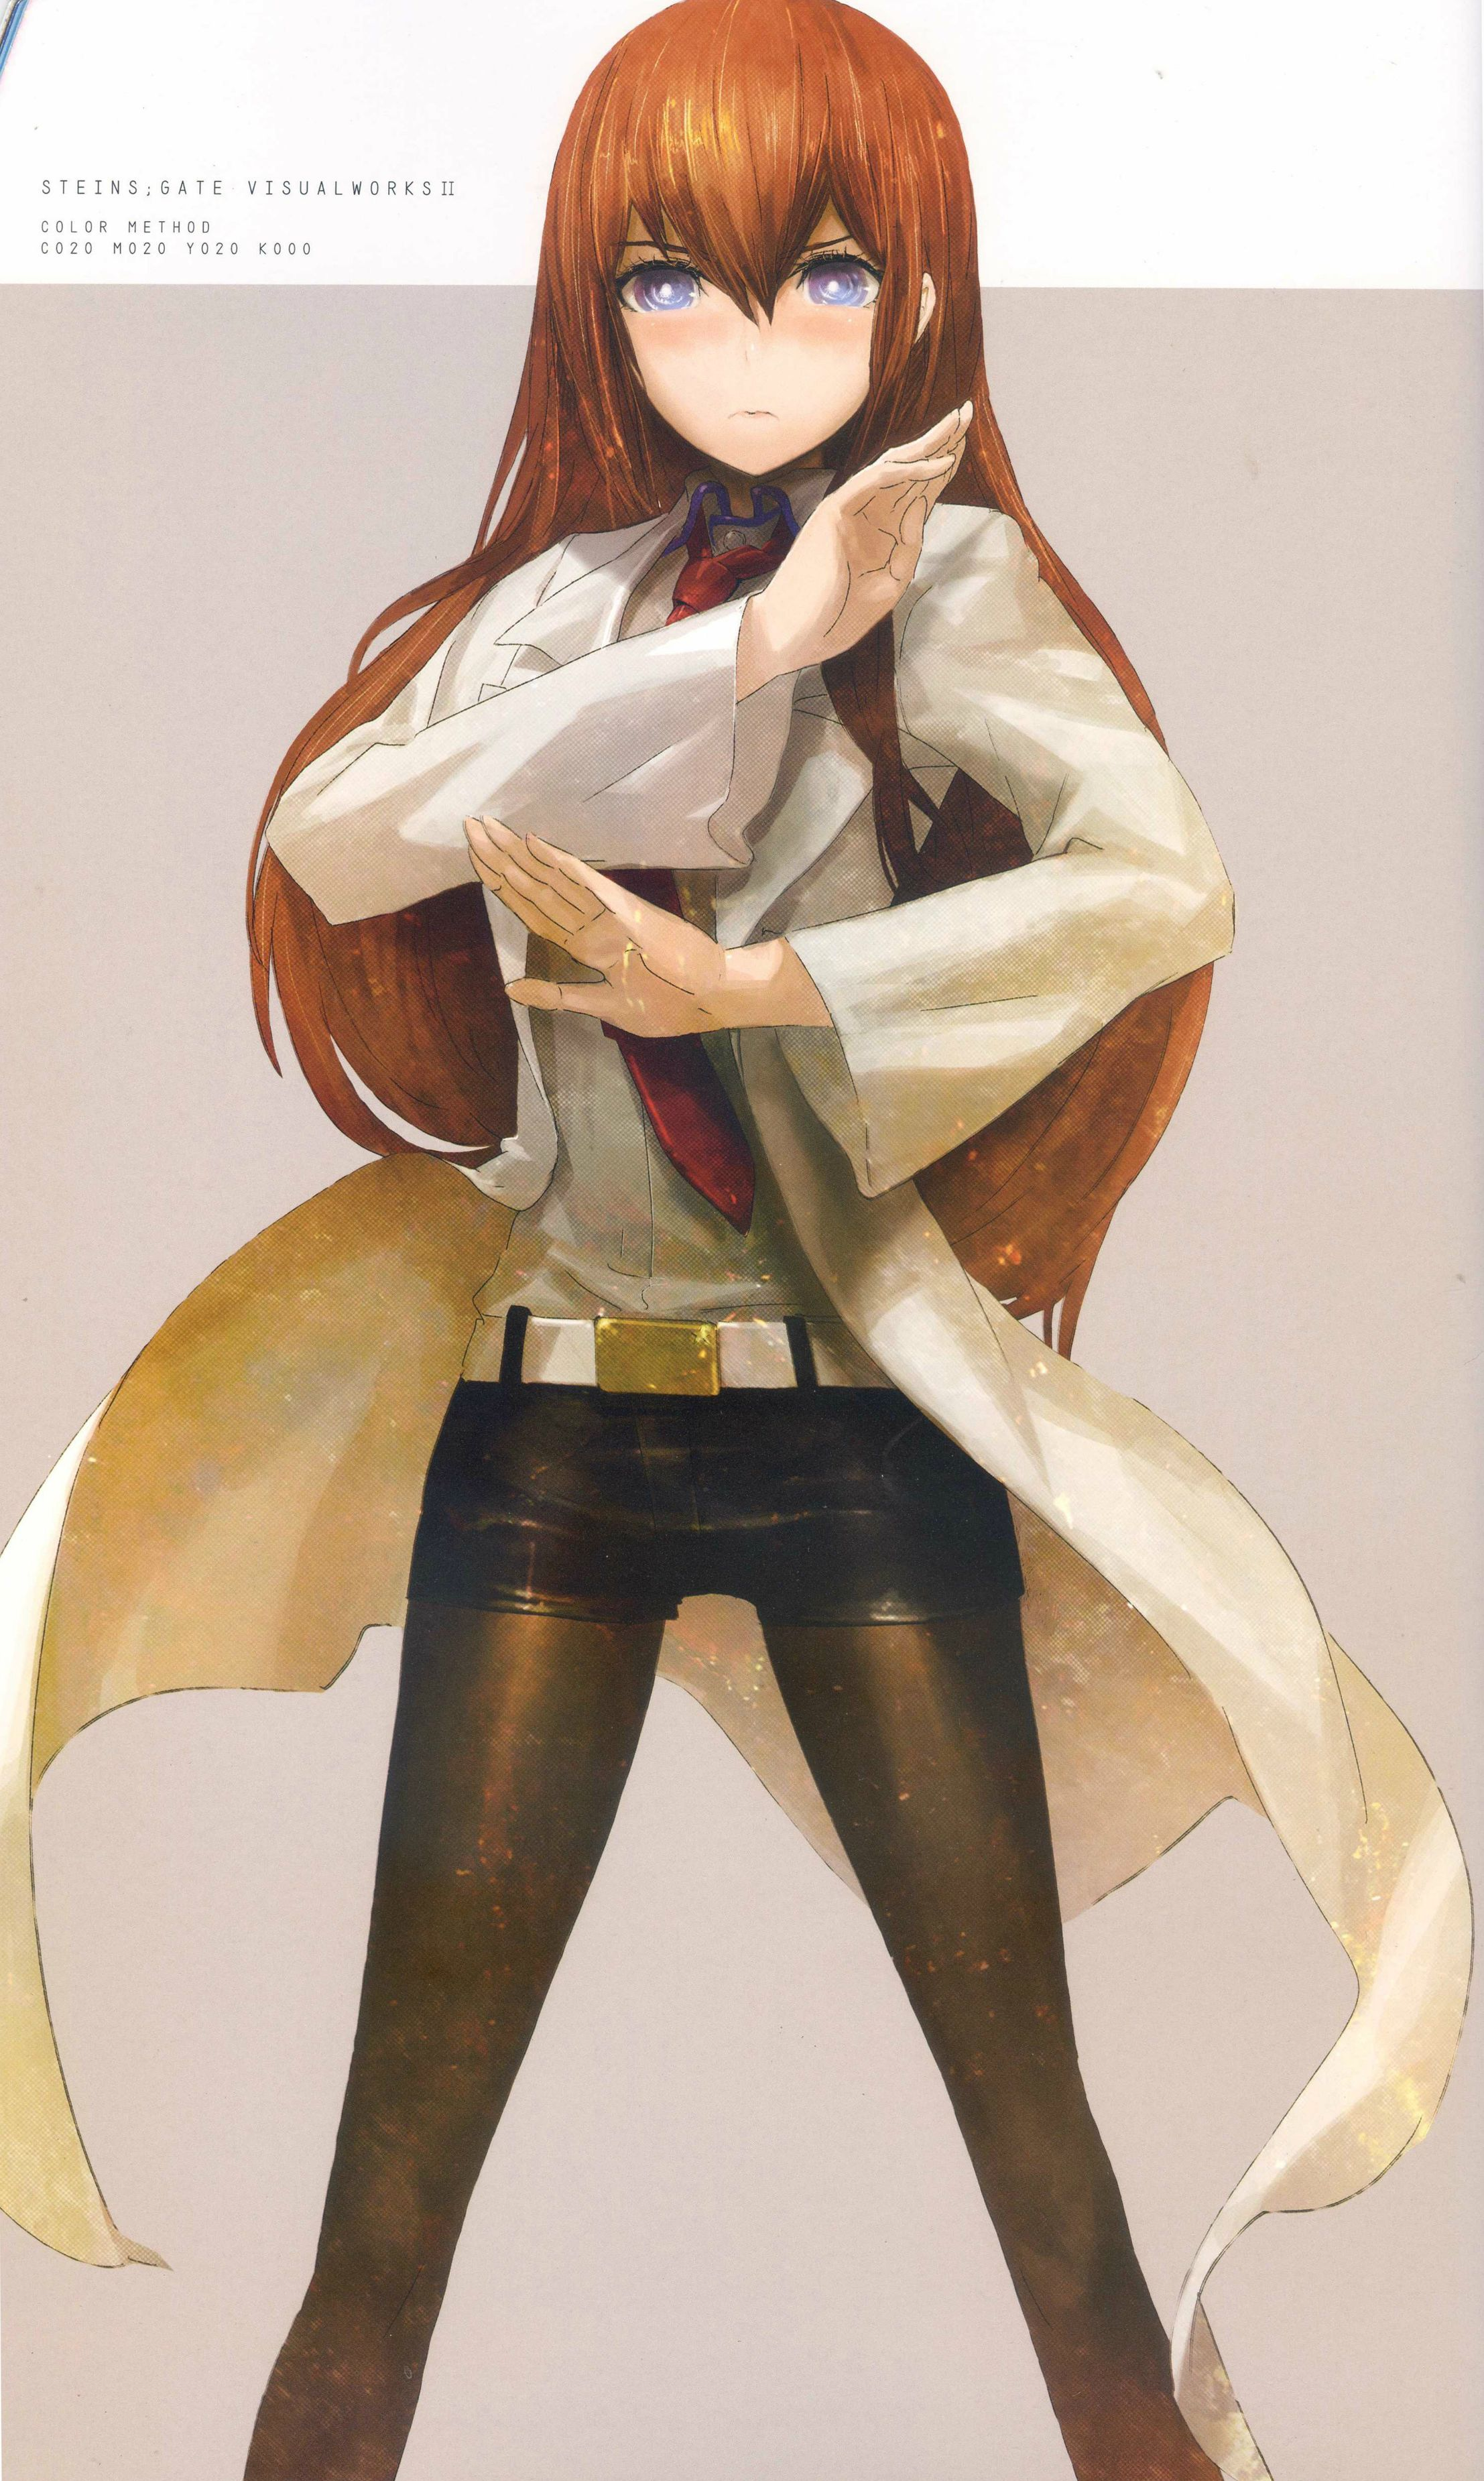 Steins;Gate Visual Works 2 10